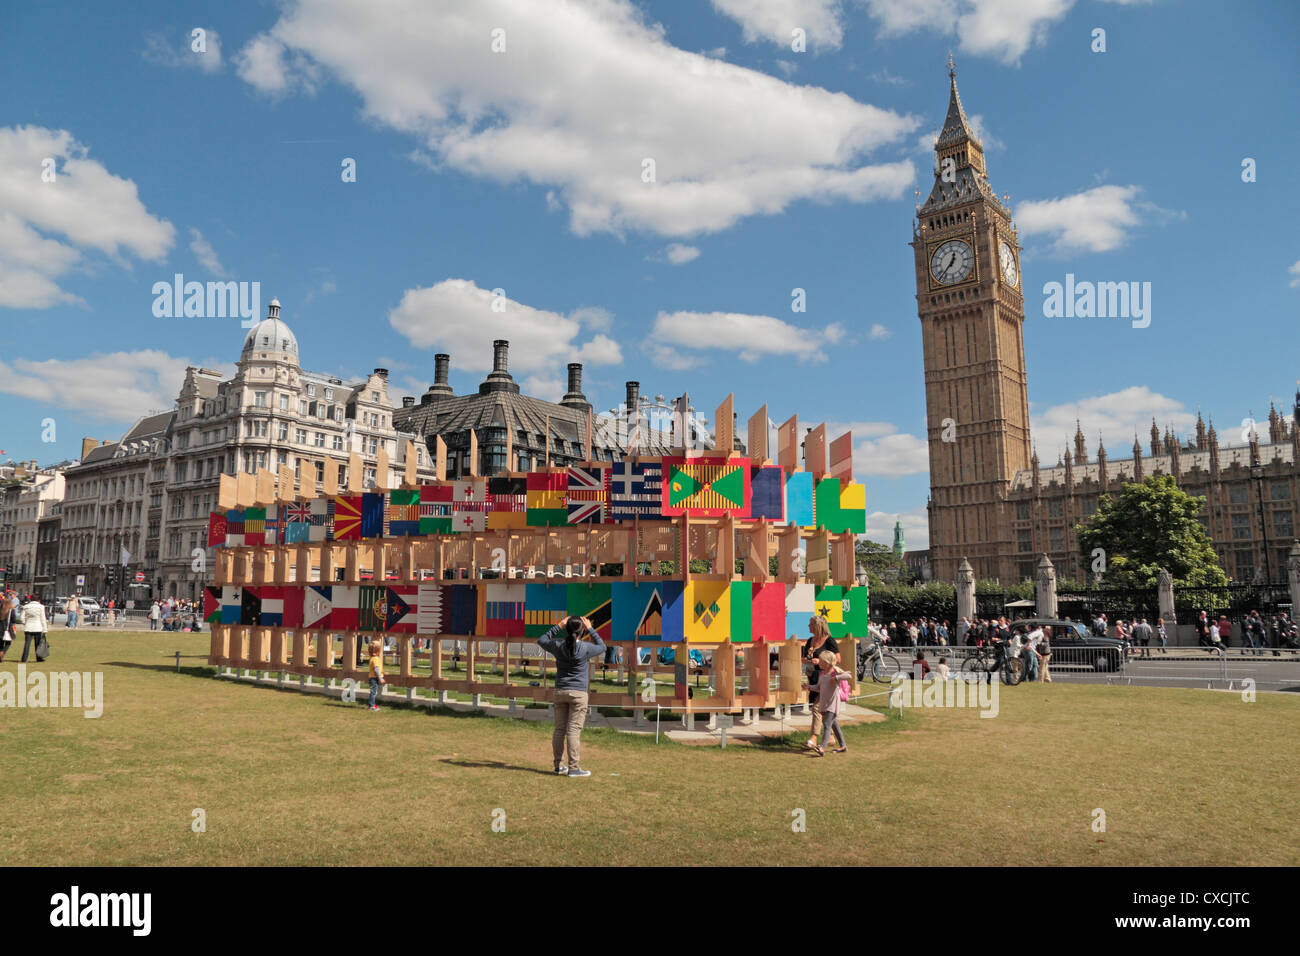 The House of Flags art Installation on Parliament Square in the ...